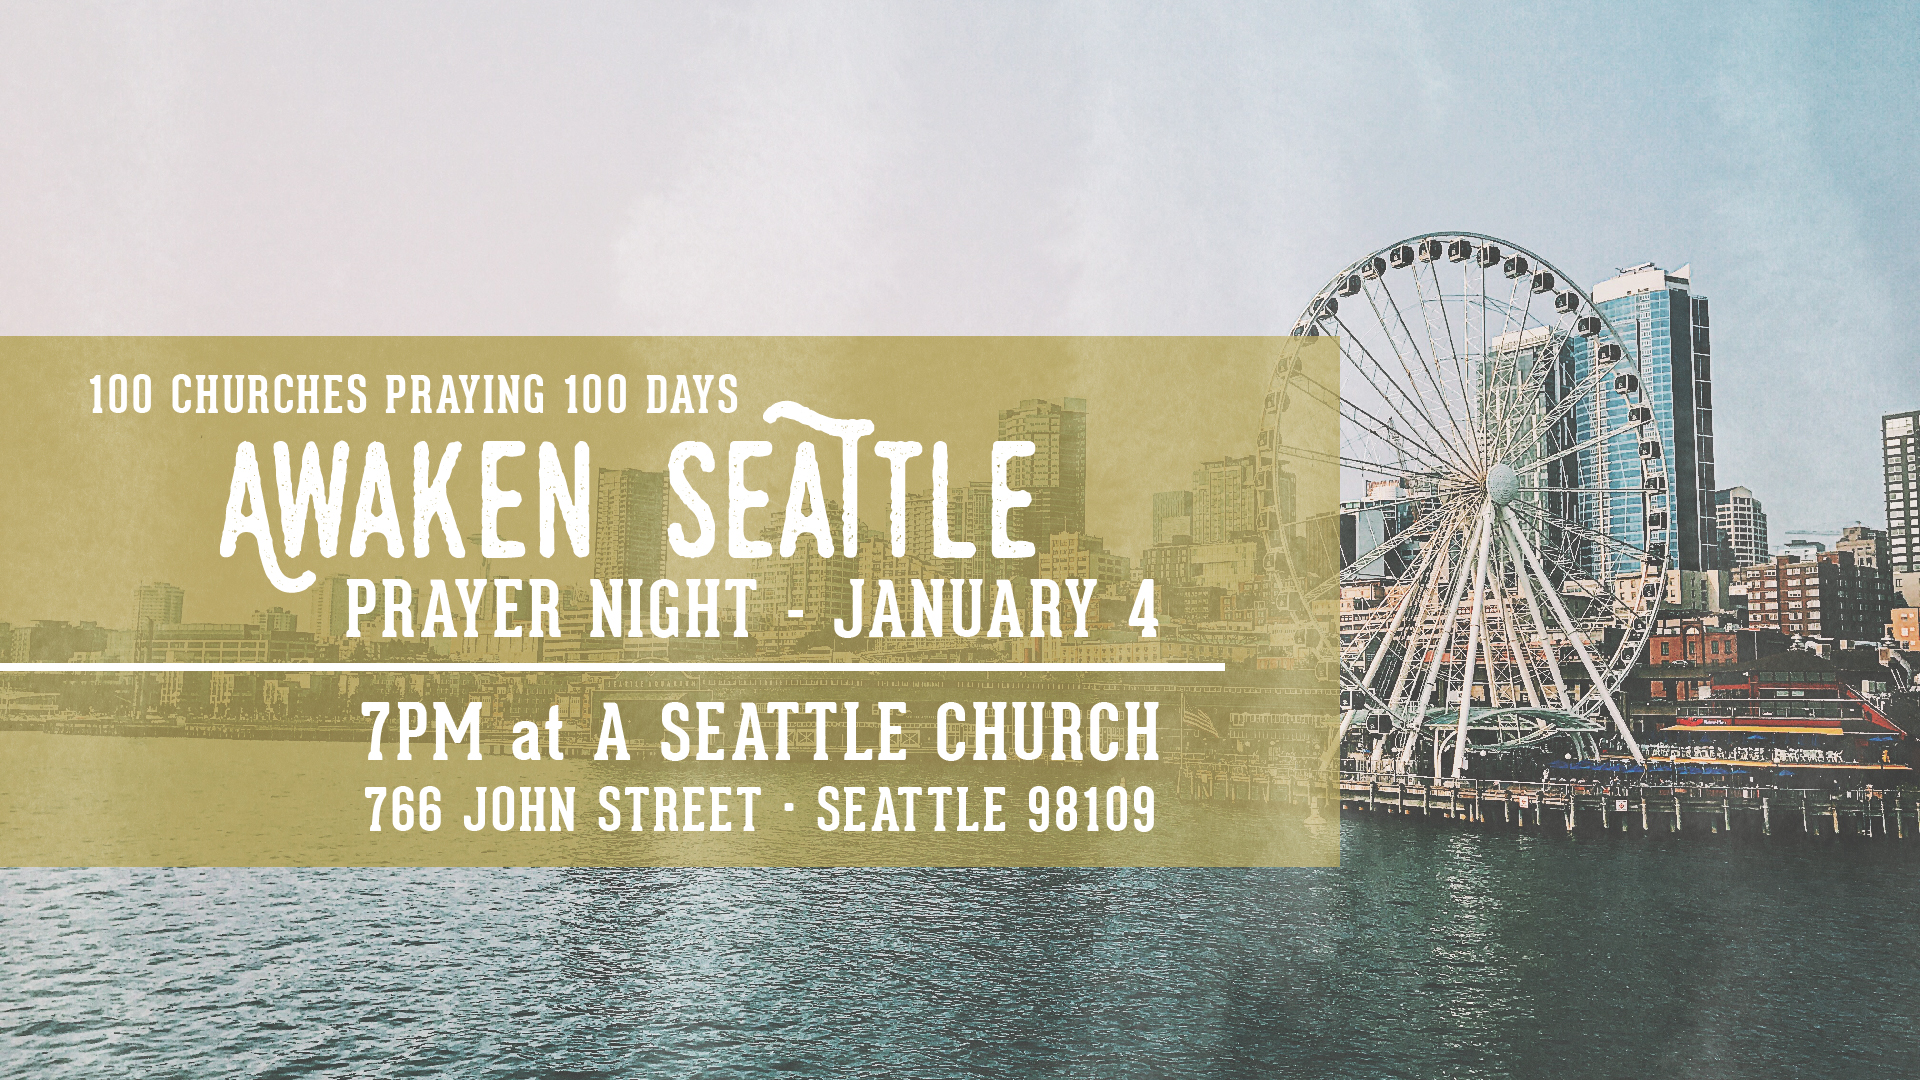 Awaken Seattle Prayer Night .jpg